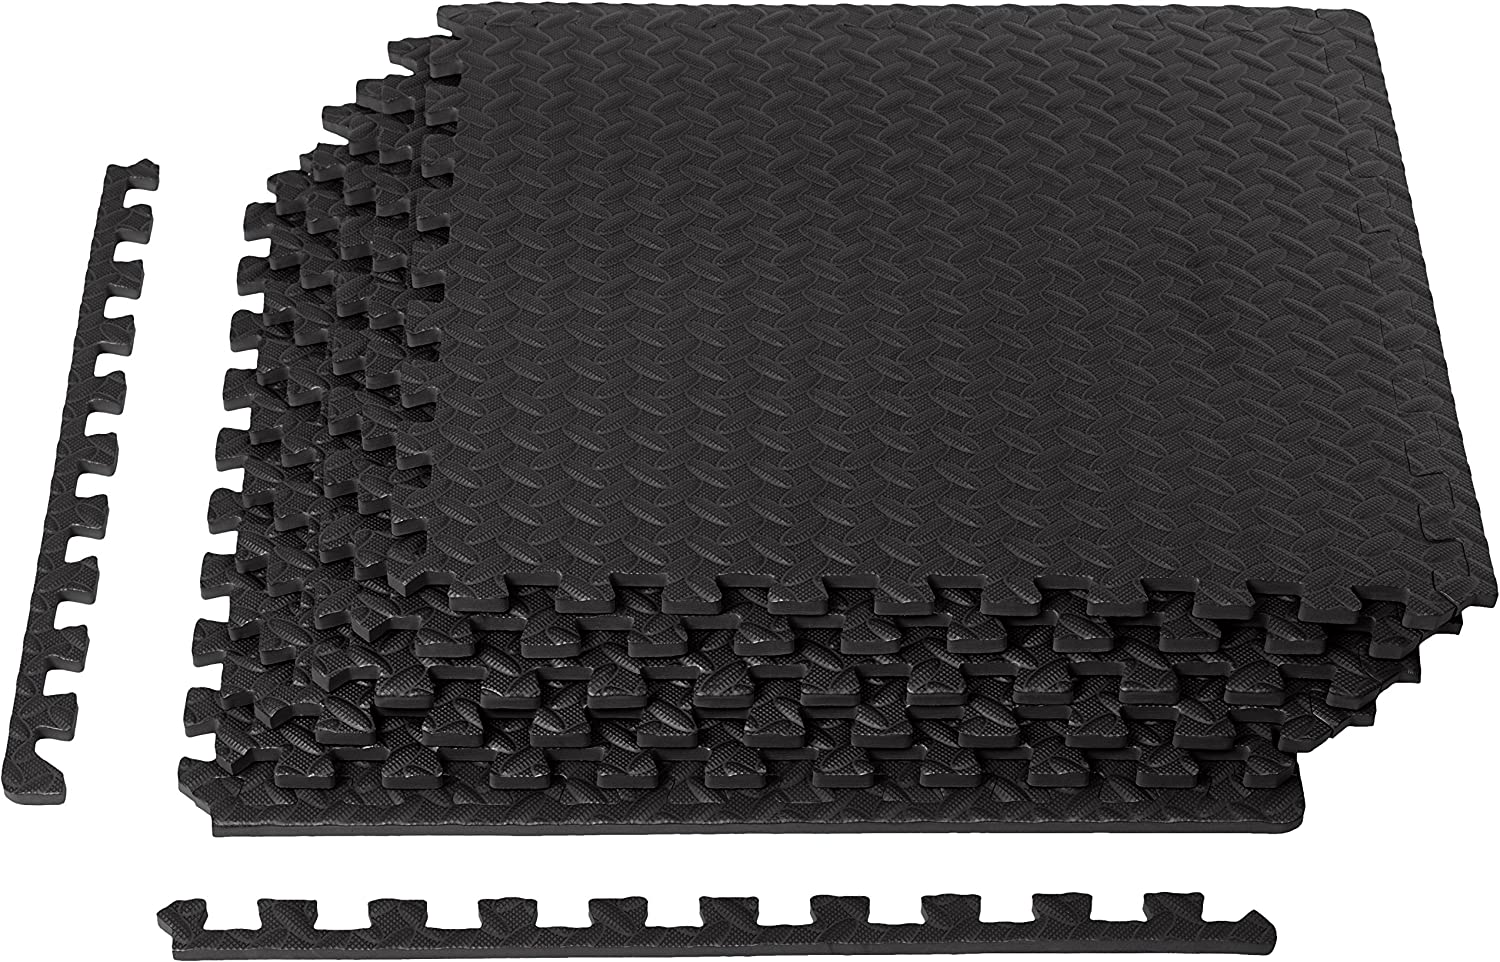 Basics Foam Interlocking Exercise Gym Floor Mat Tiles - Pack of 6, 24 x 24 x .5 Inches, Black : Sports & Outdoors